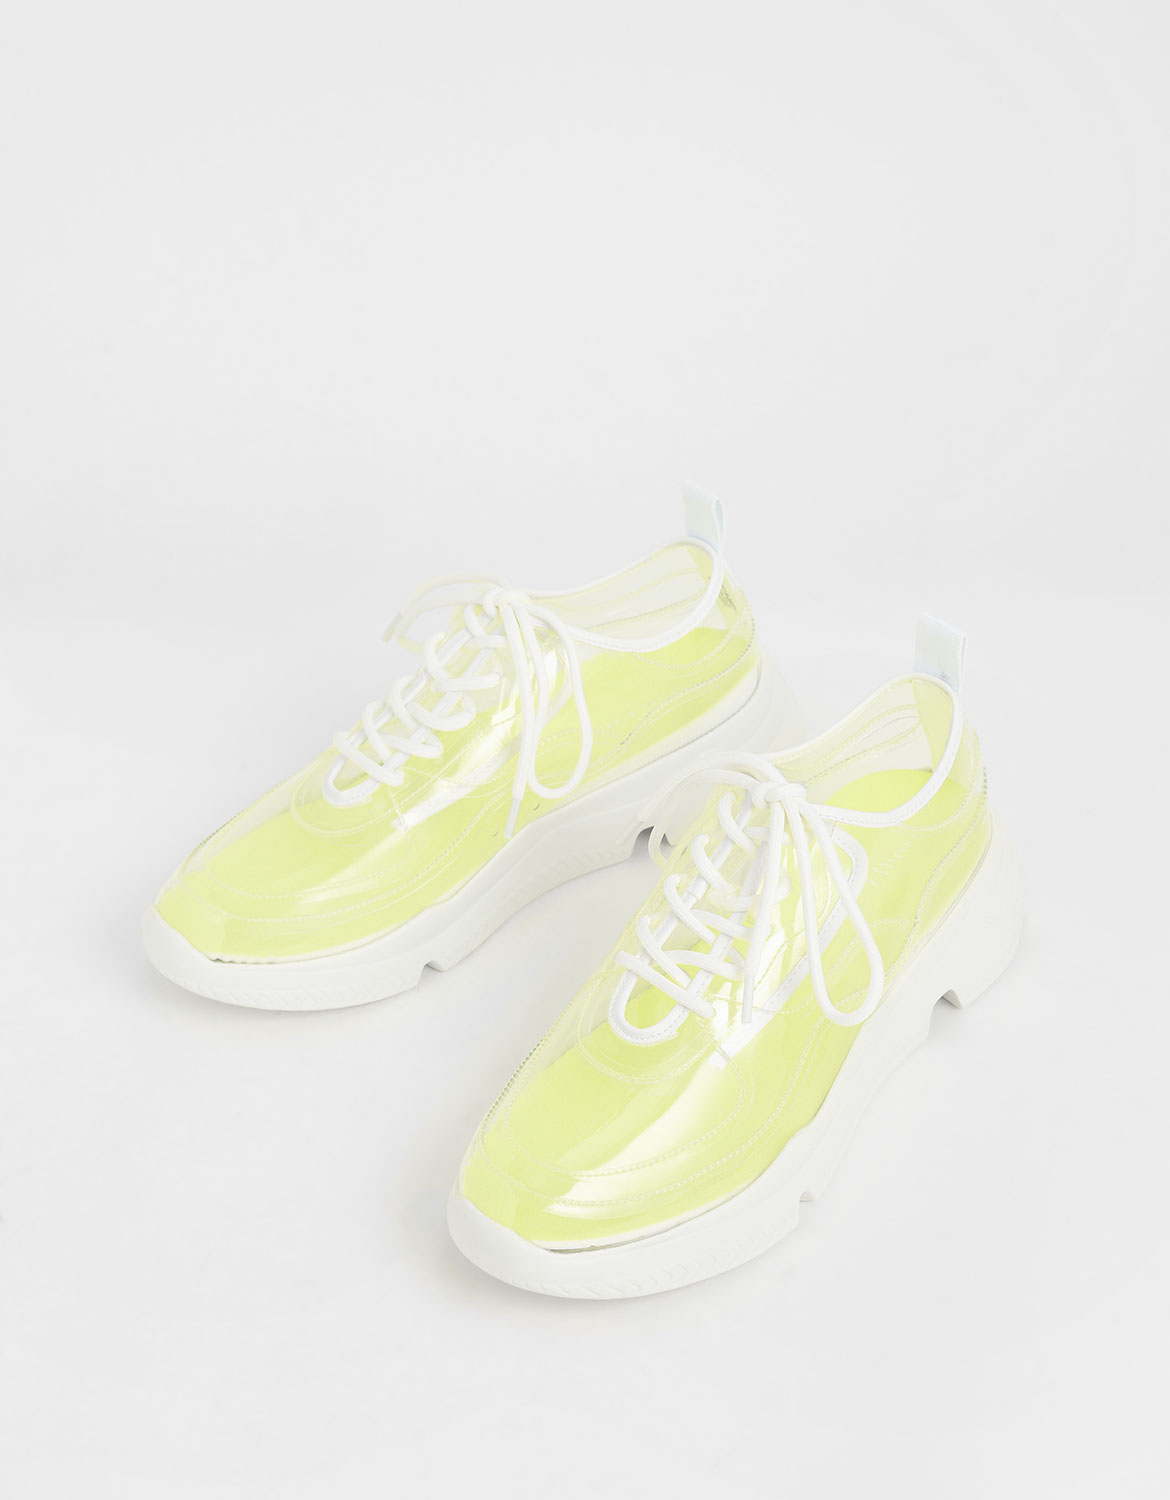 Women's clear chunky sneakers in white